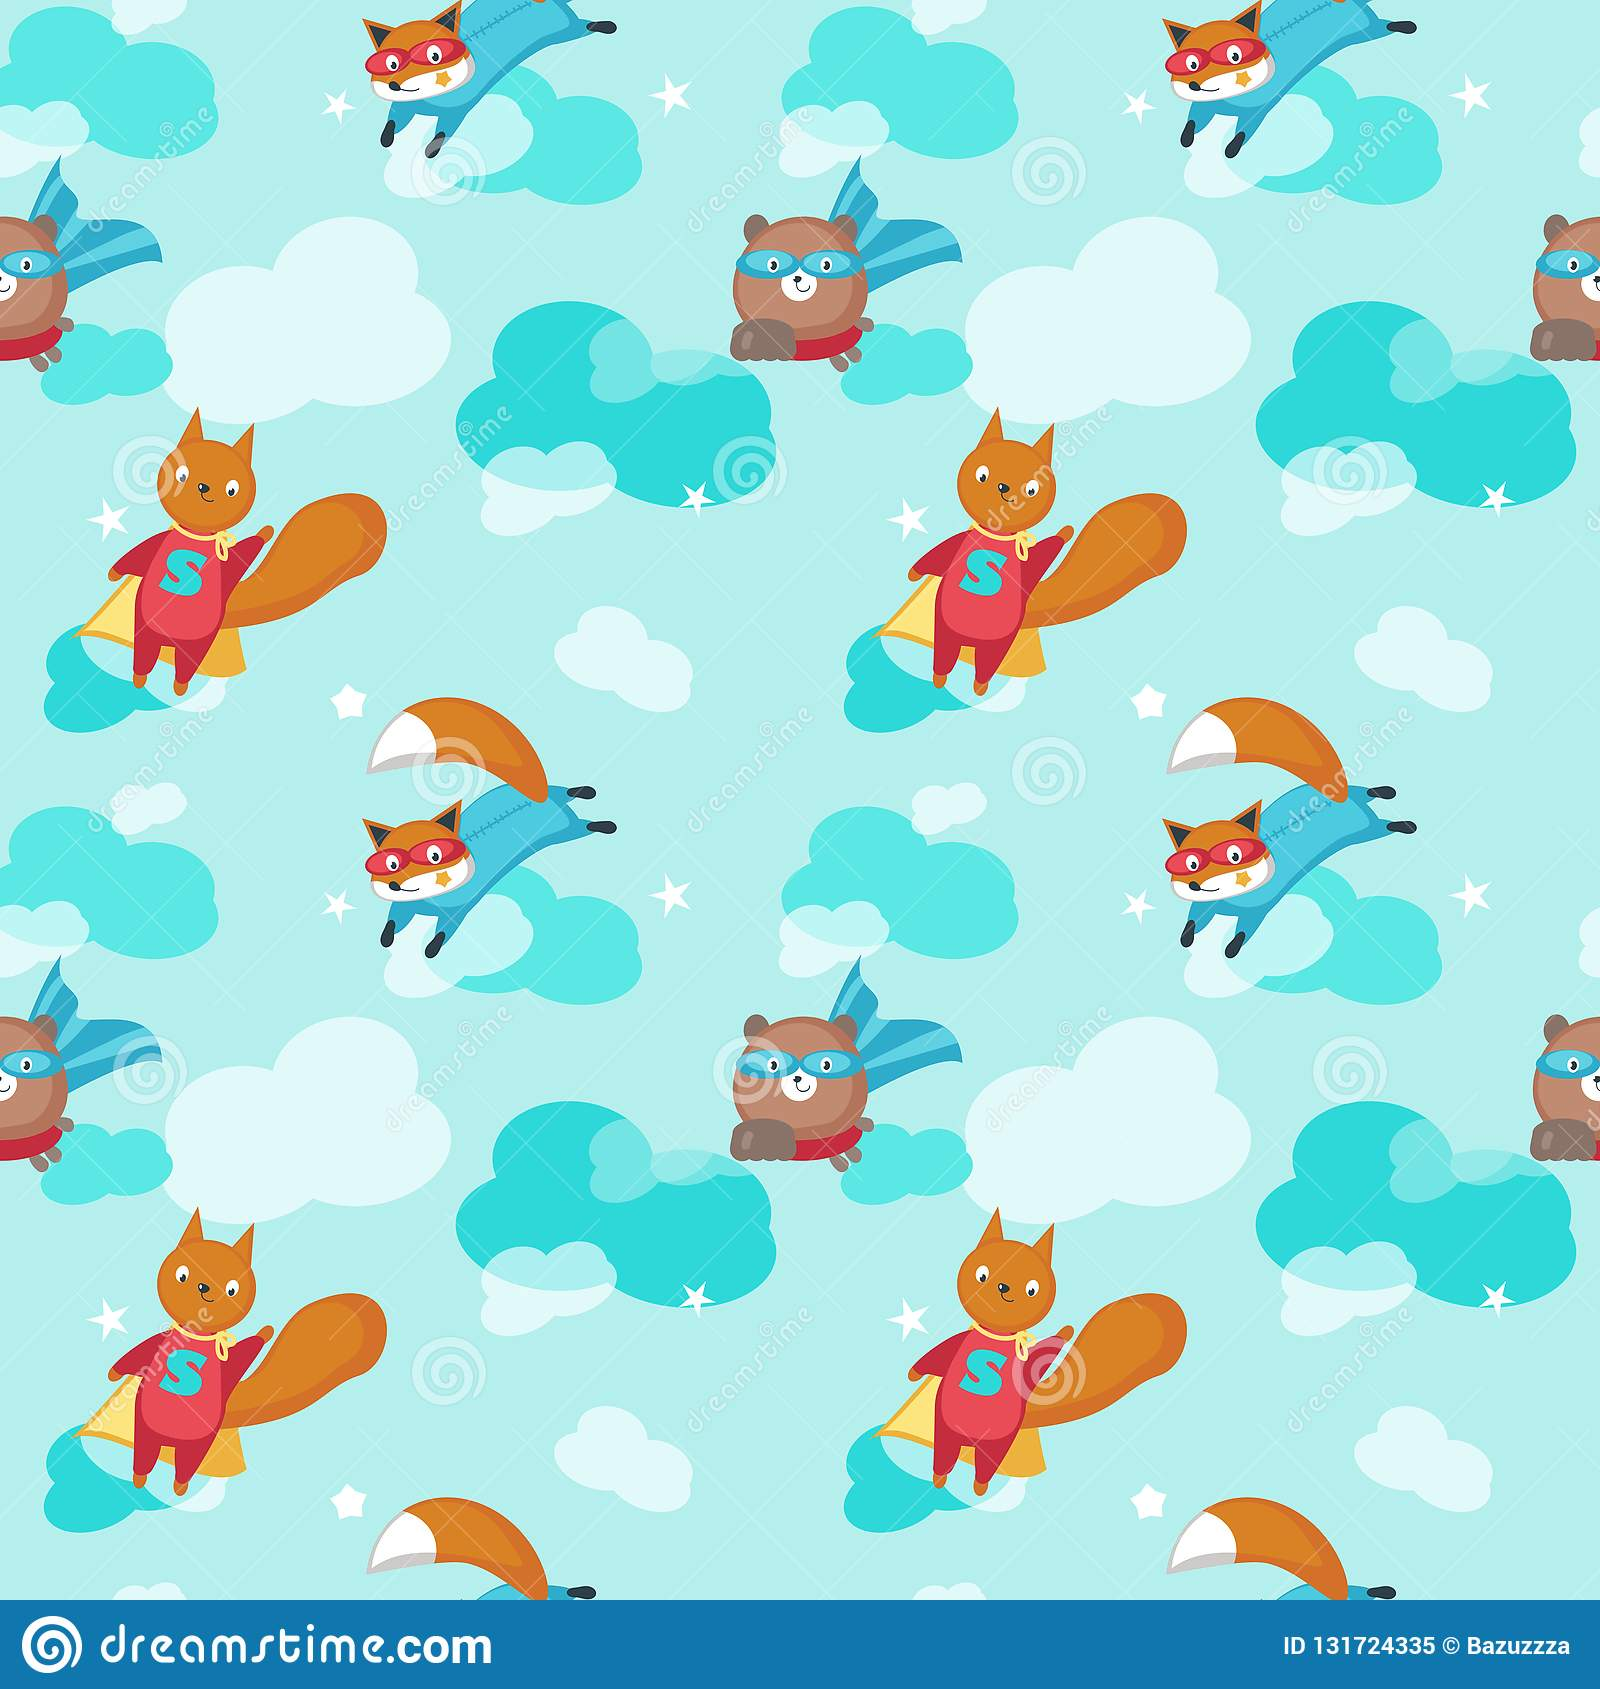 Vector seamless pattern with cute animals bear squirrel and fox flying in sky in super hero costumes superhero animals background wallpaper fabric